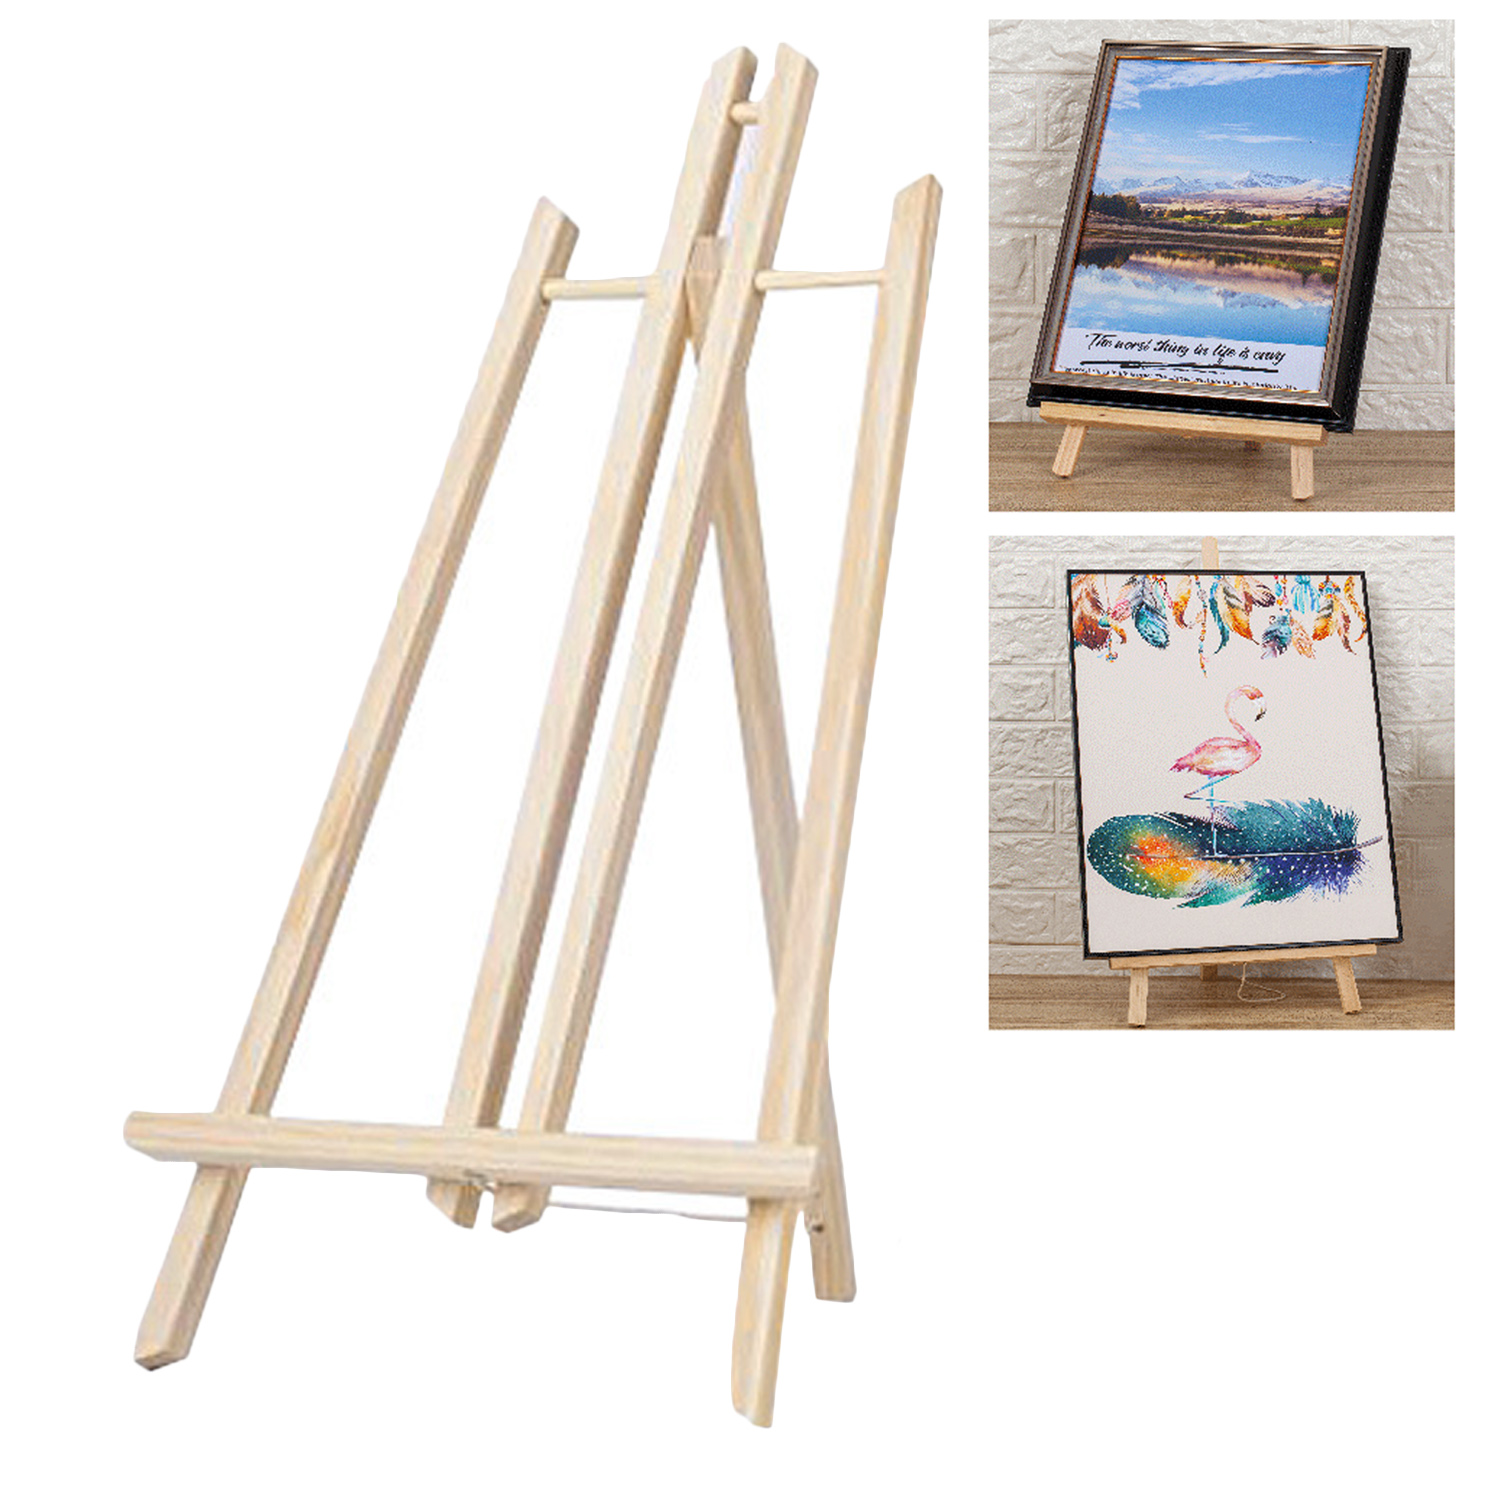 30/40/50cm Portable Wooden Easel Display Shelf Holder Stand for Artist Painting Sketching DIY Arts Photo Cards Displaying